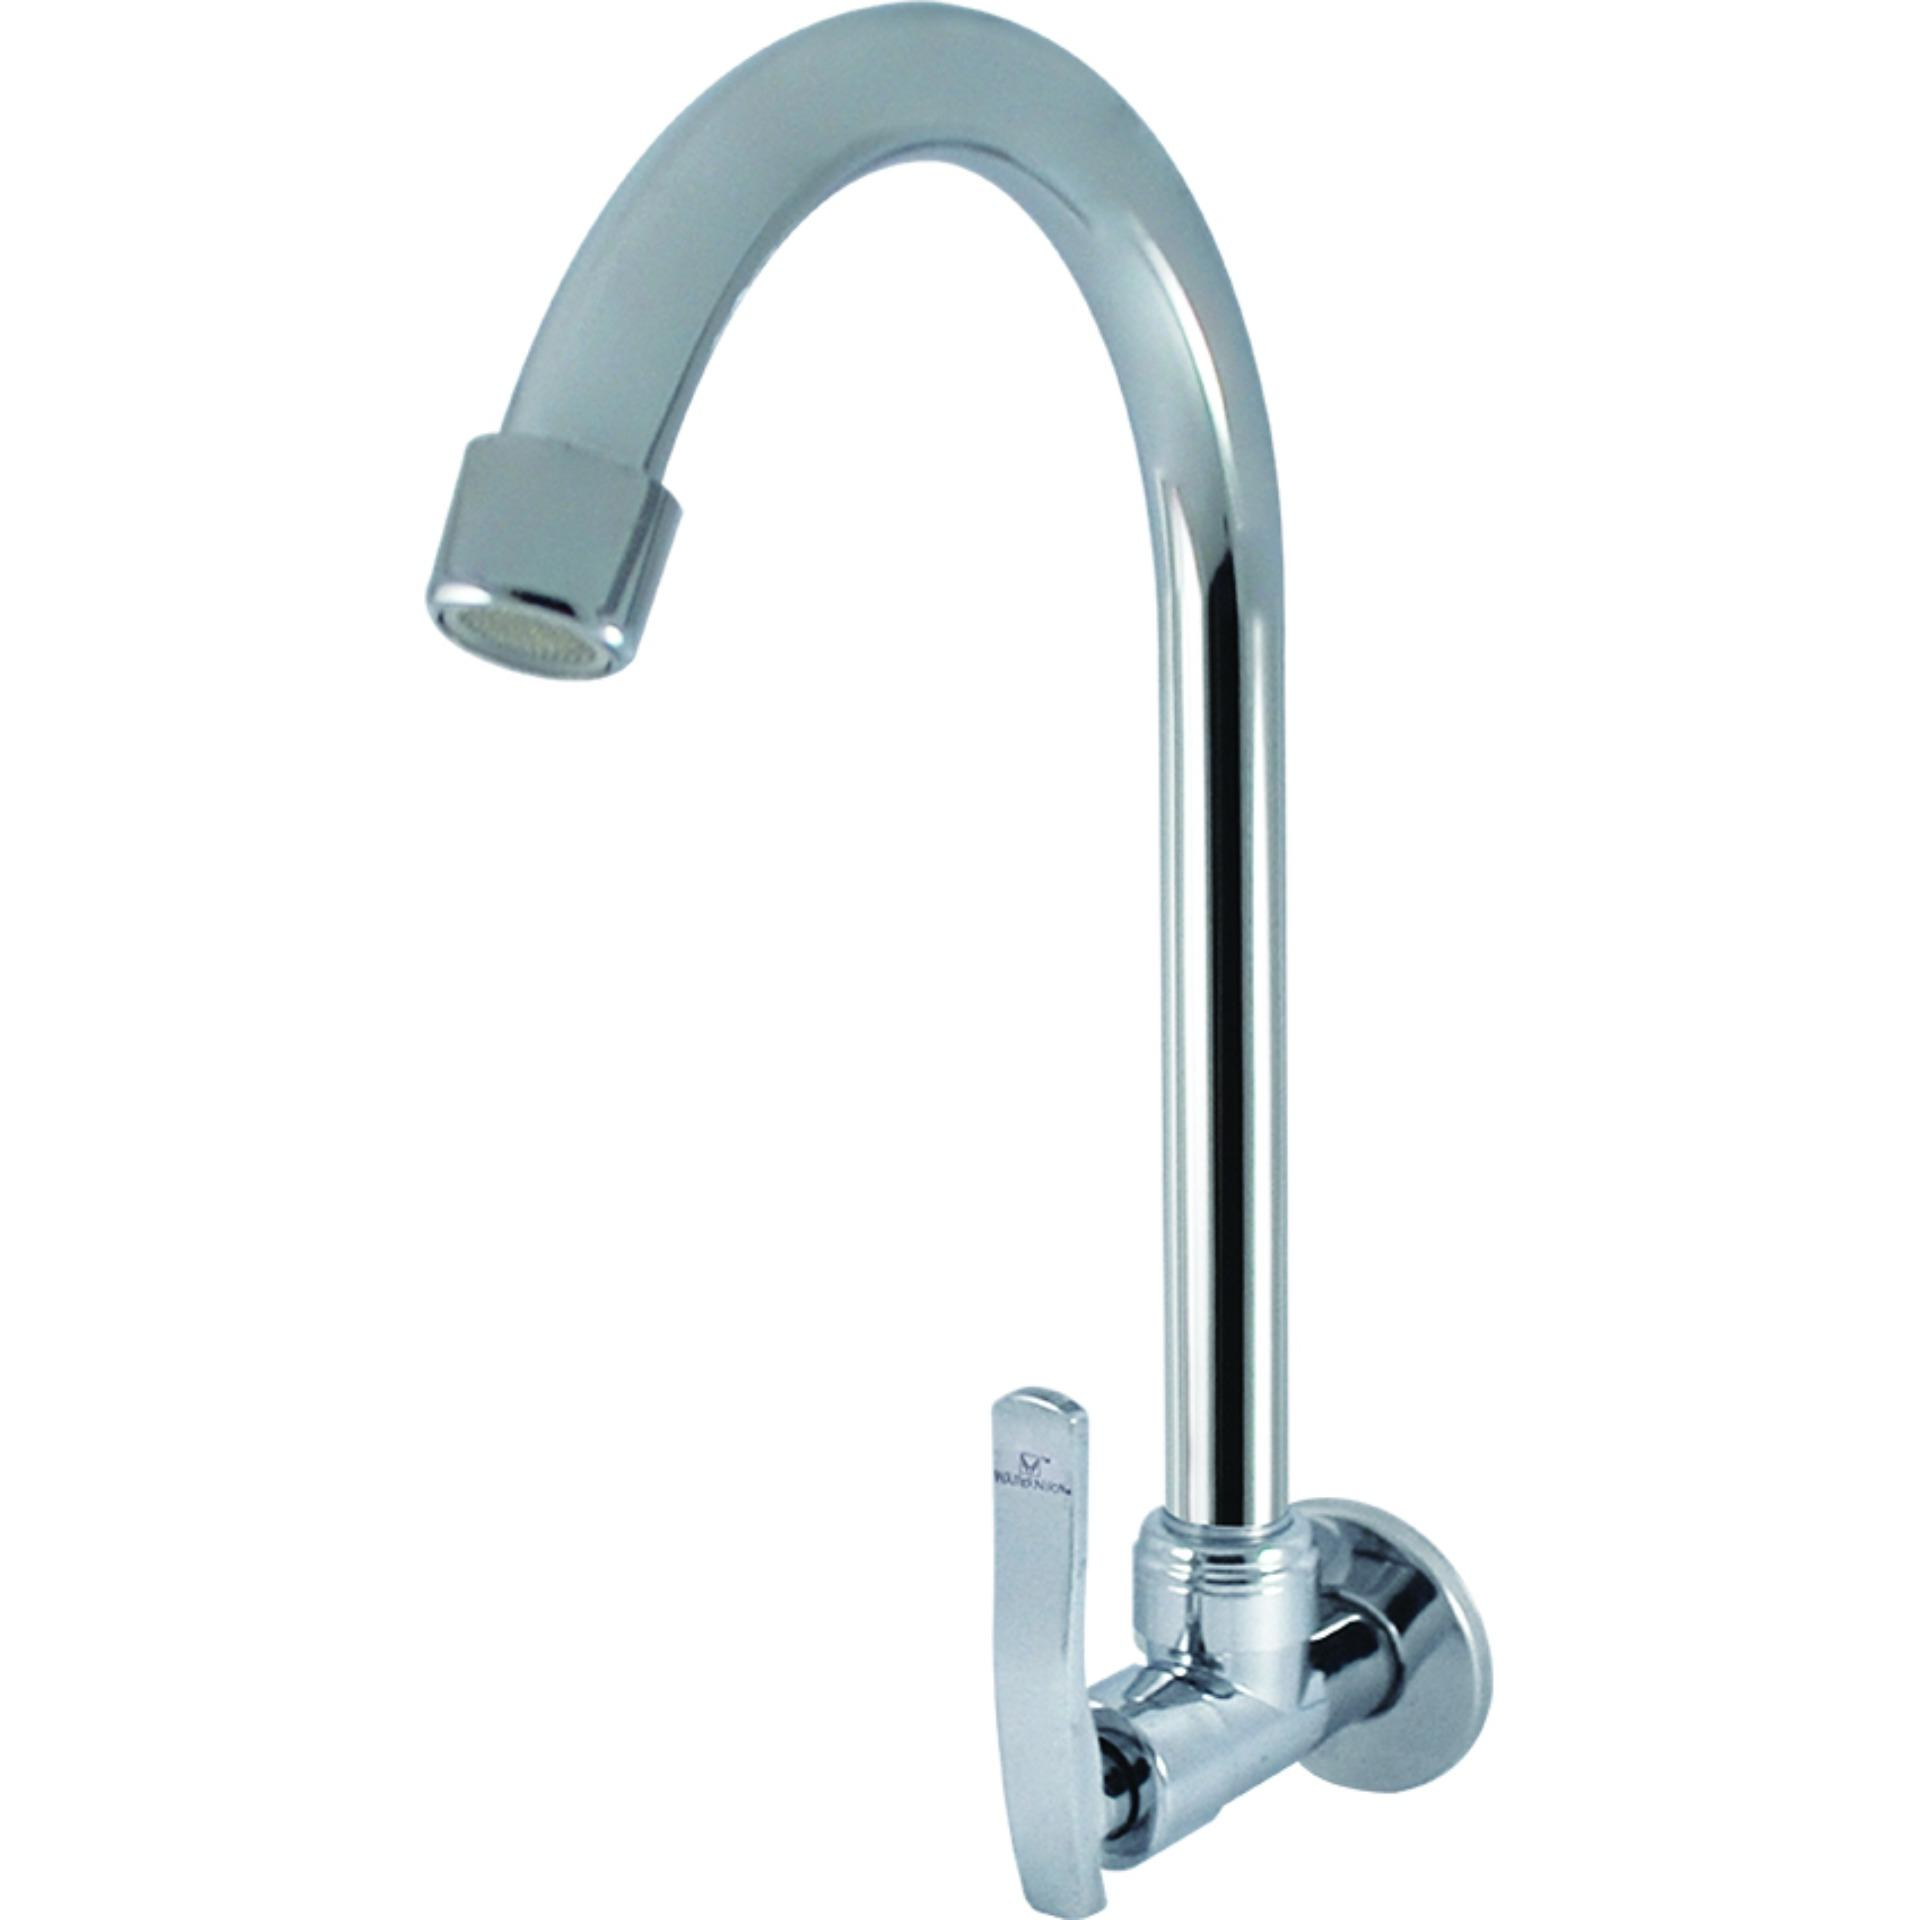 Wall Mounted Hybrid Goose Neck Faucet in Chrome Finish WHB 5002 ...